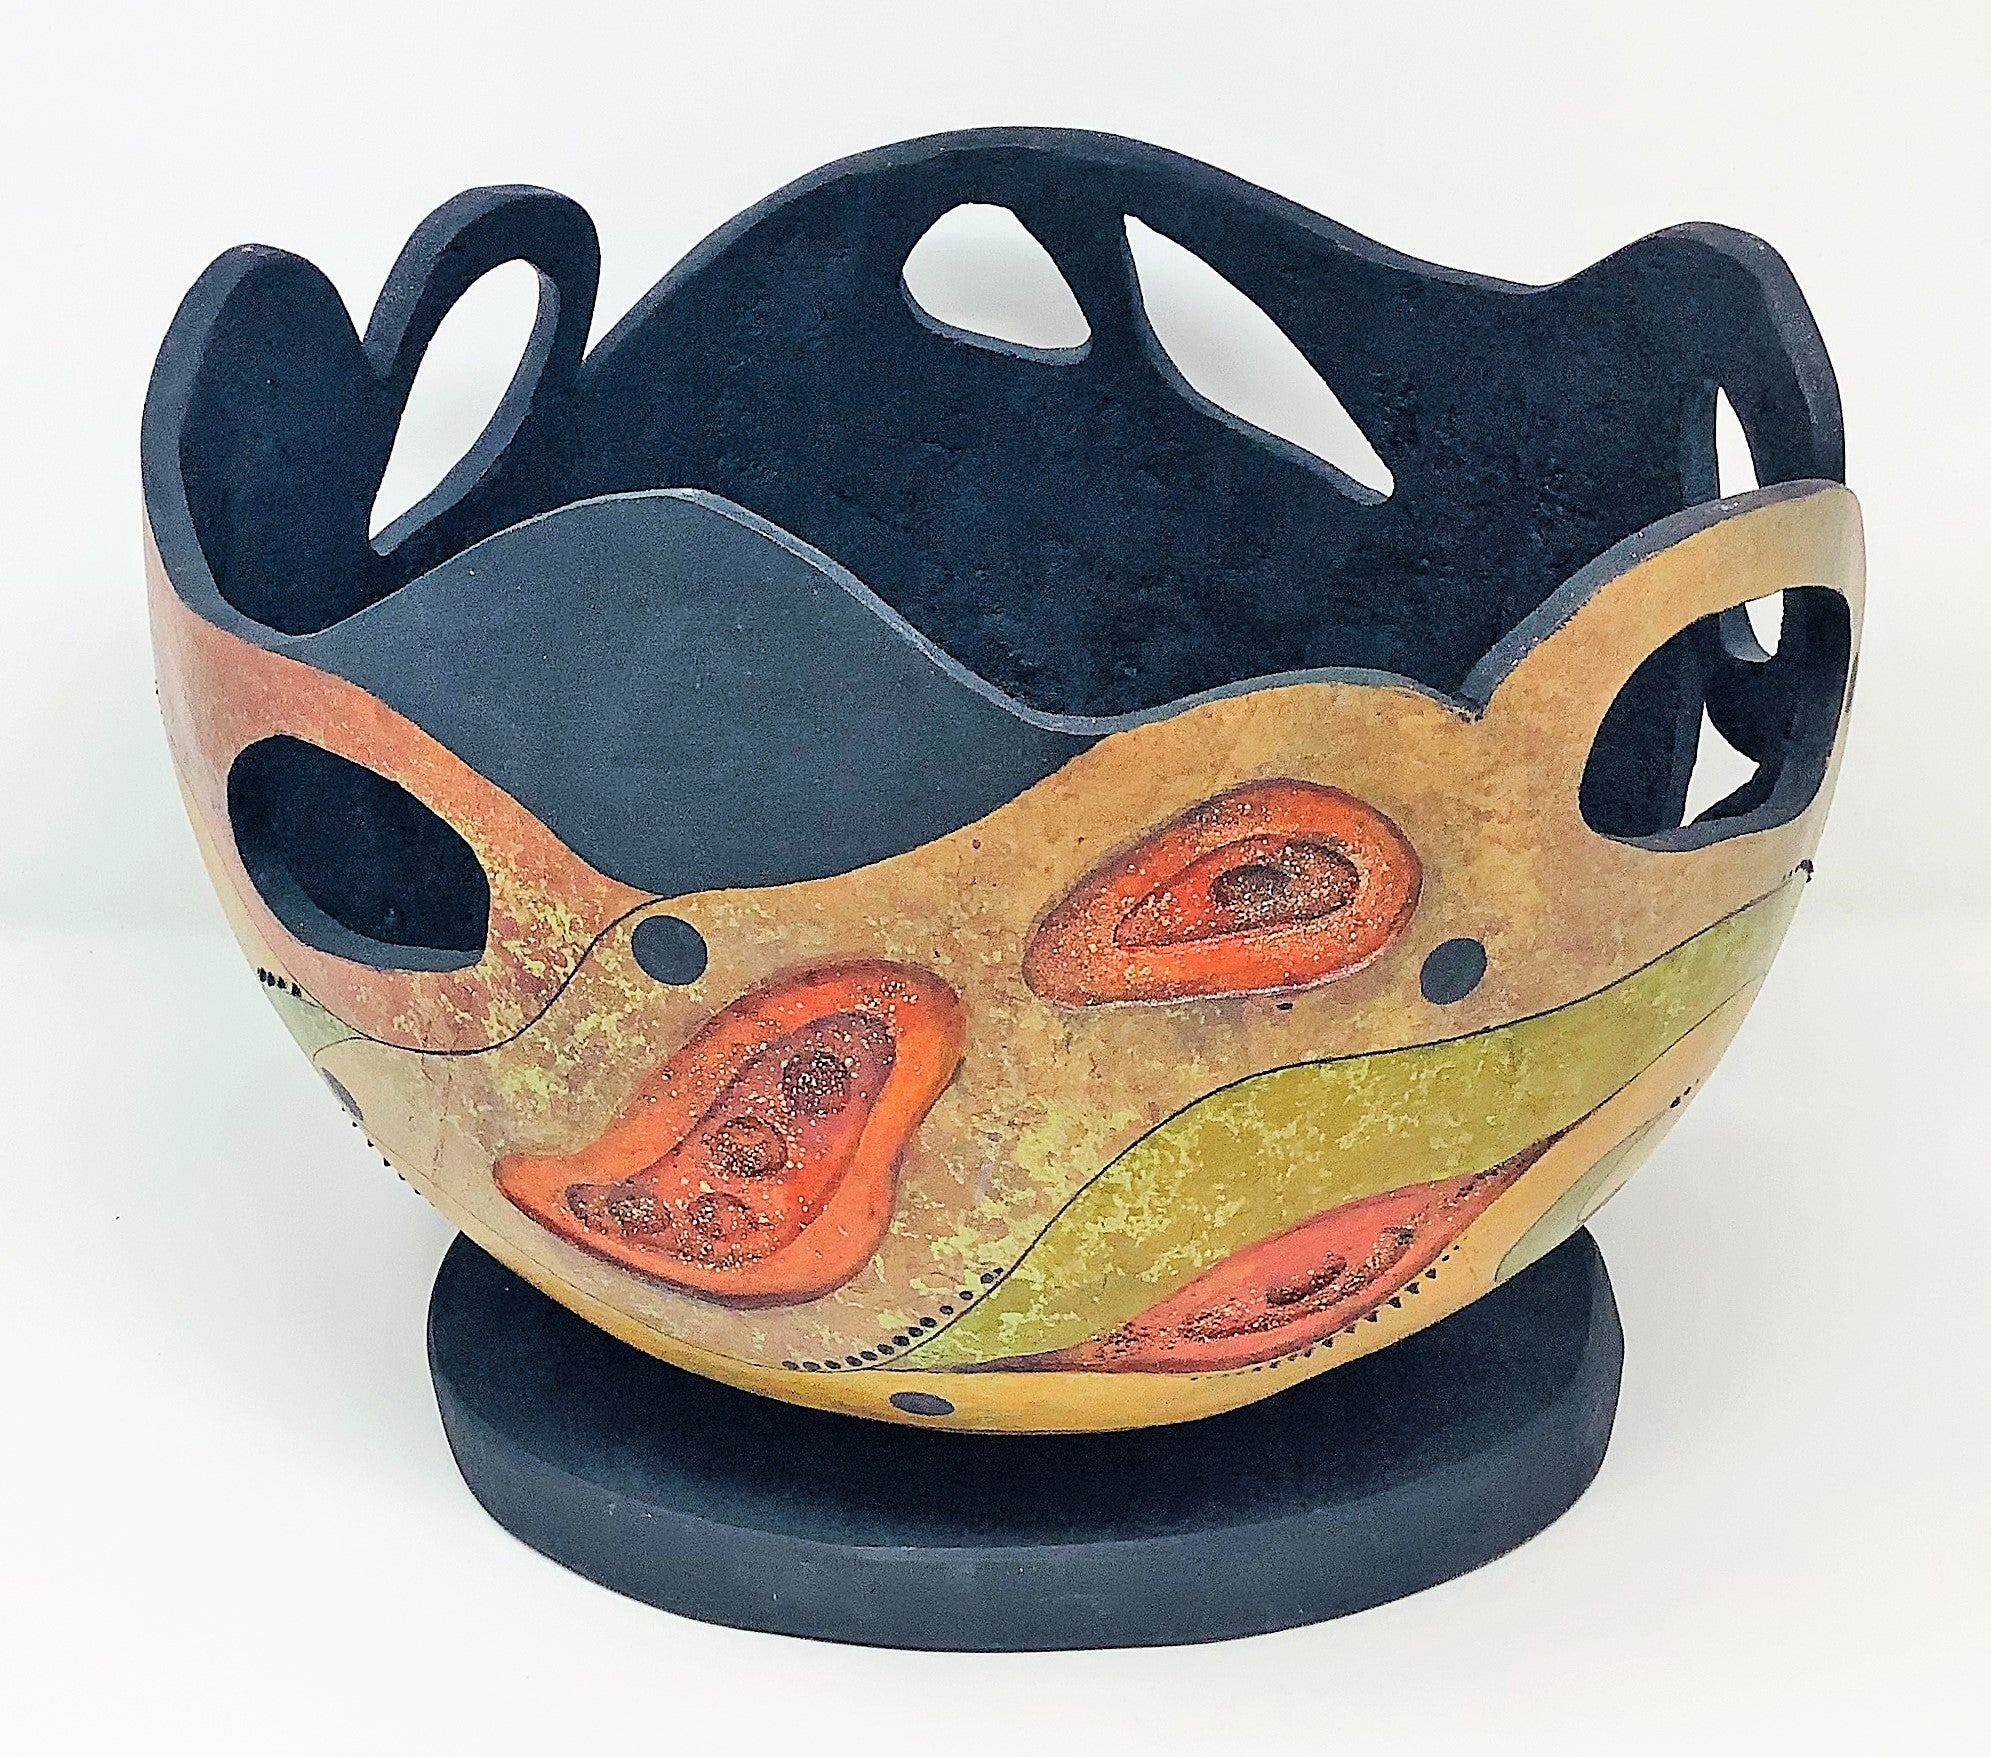 "CH132 Gourd, ""Movement Bowl and Stand"", Hand-Carved, 12"" x 12"" x 9"", by Claudia Herber"